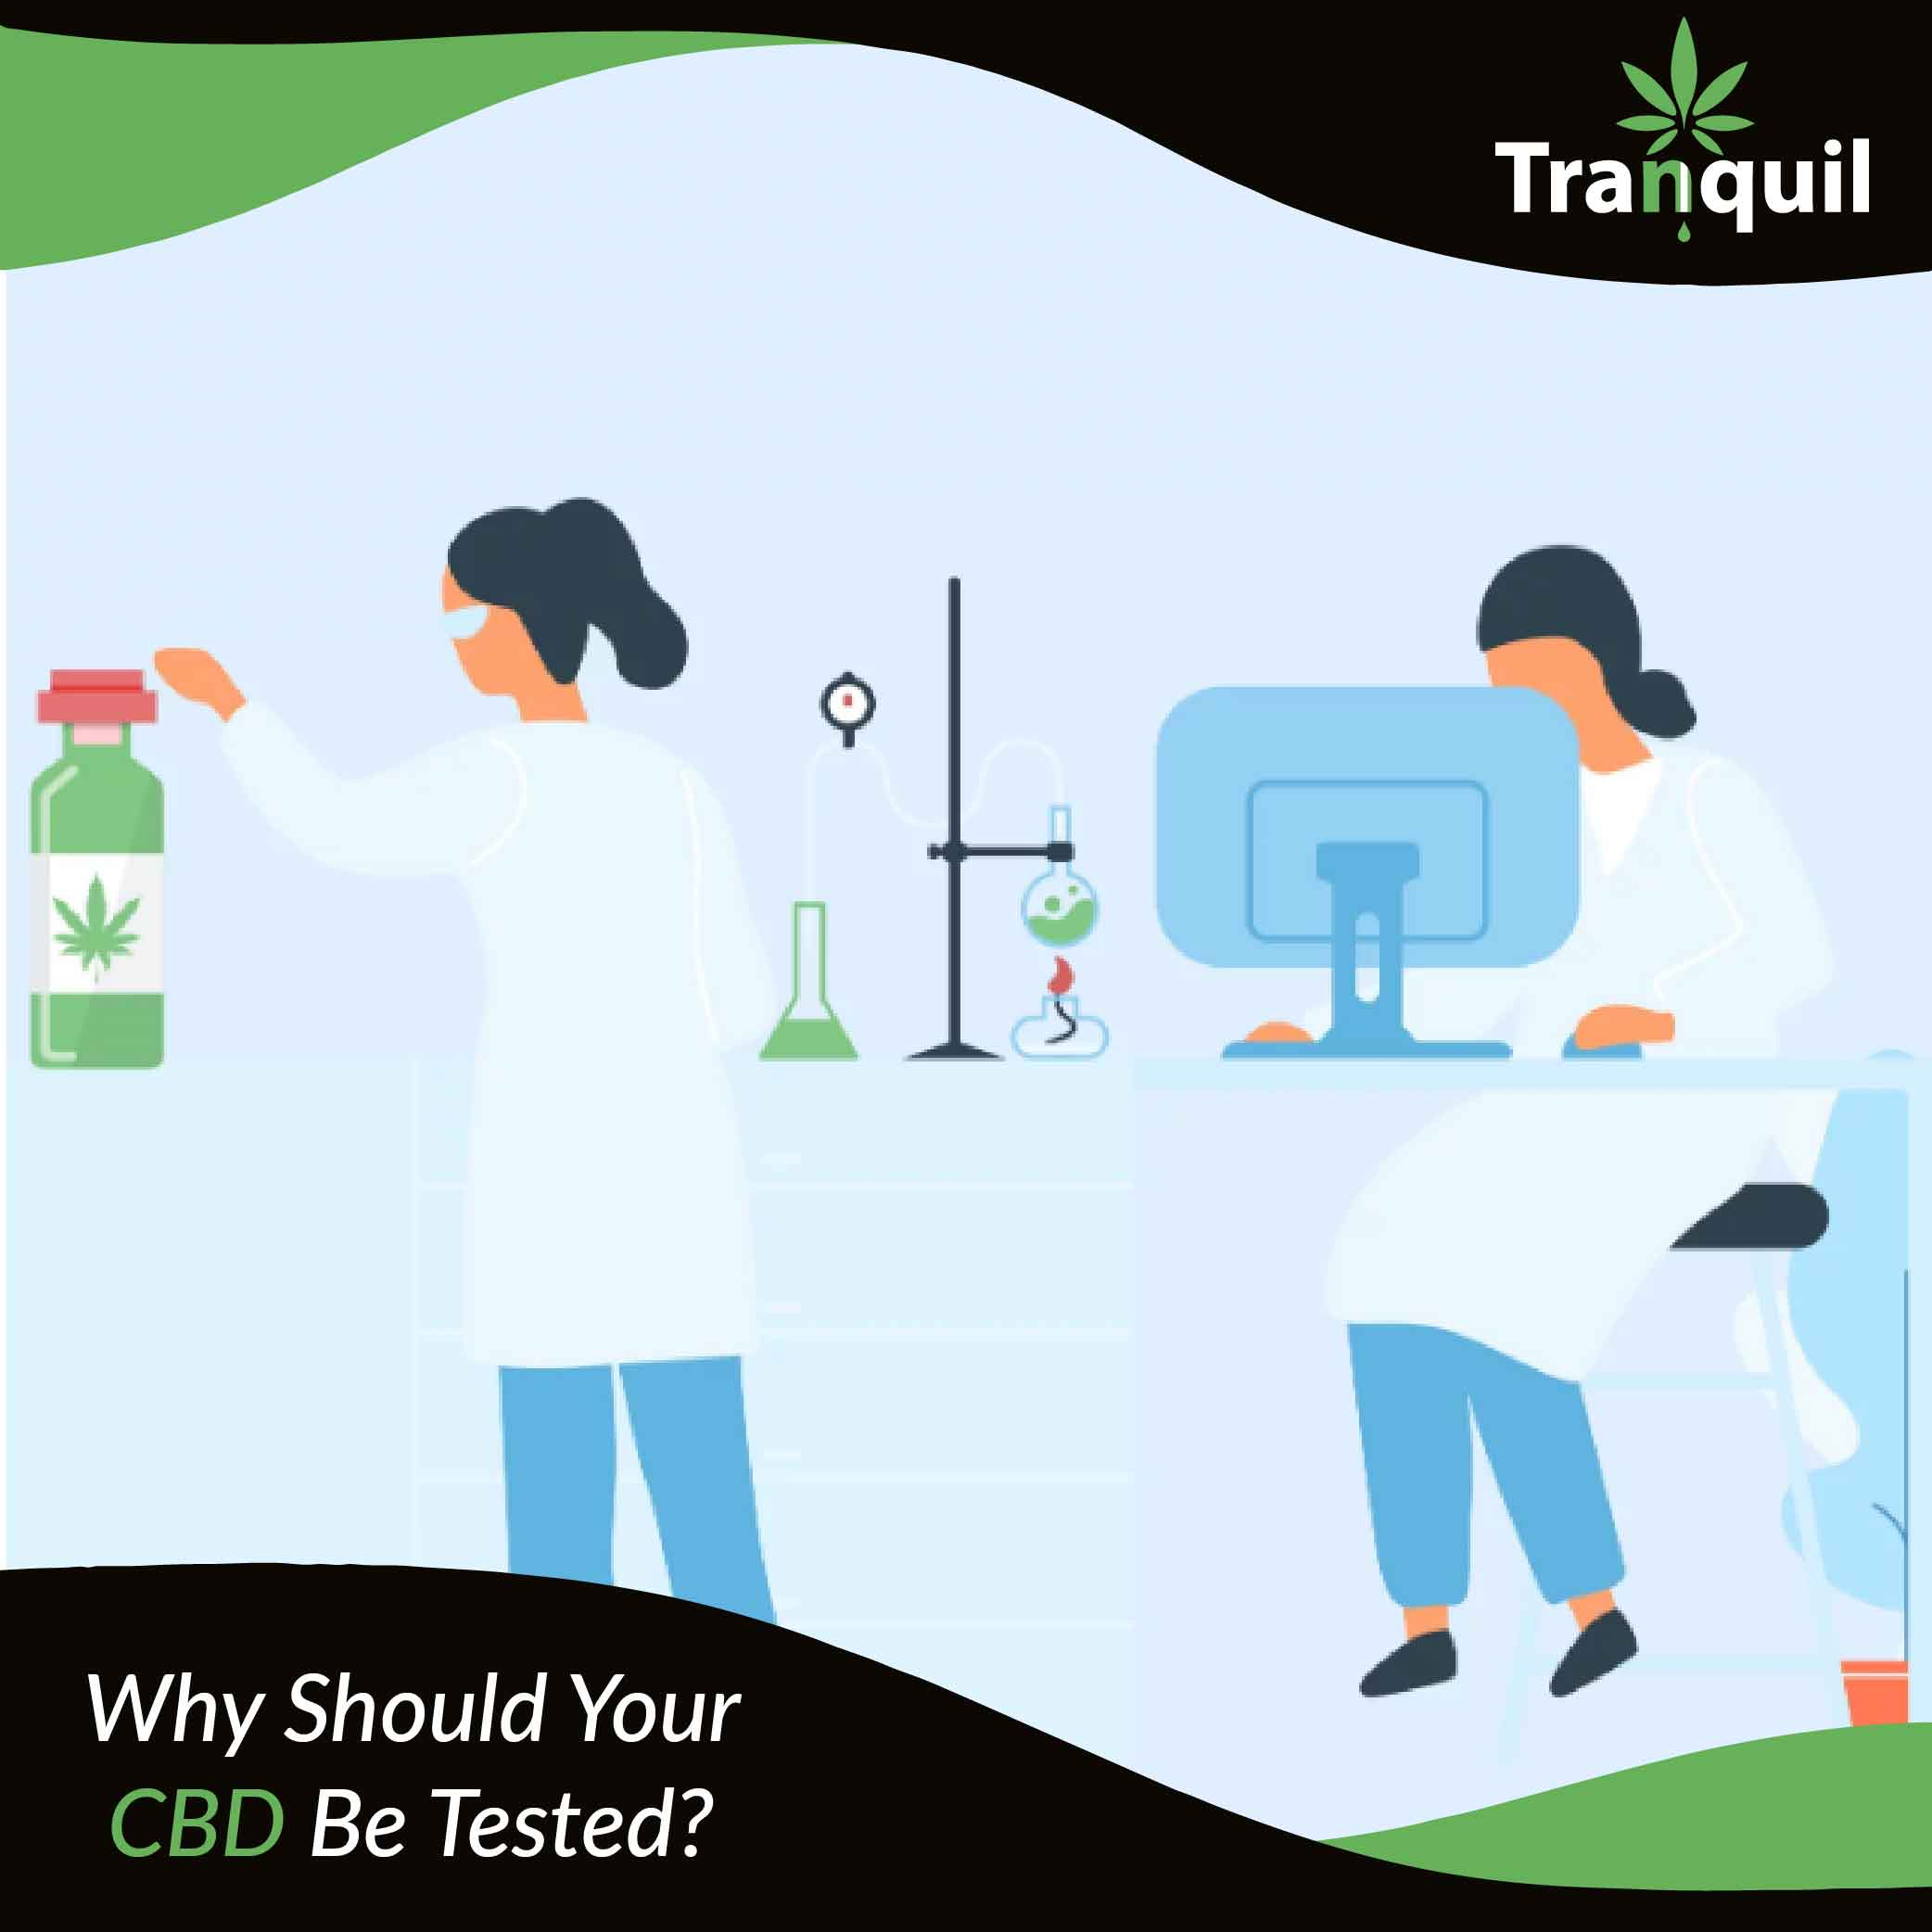 Why Should Your CBD Be Tested